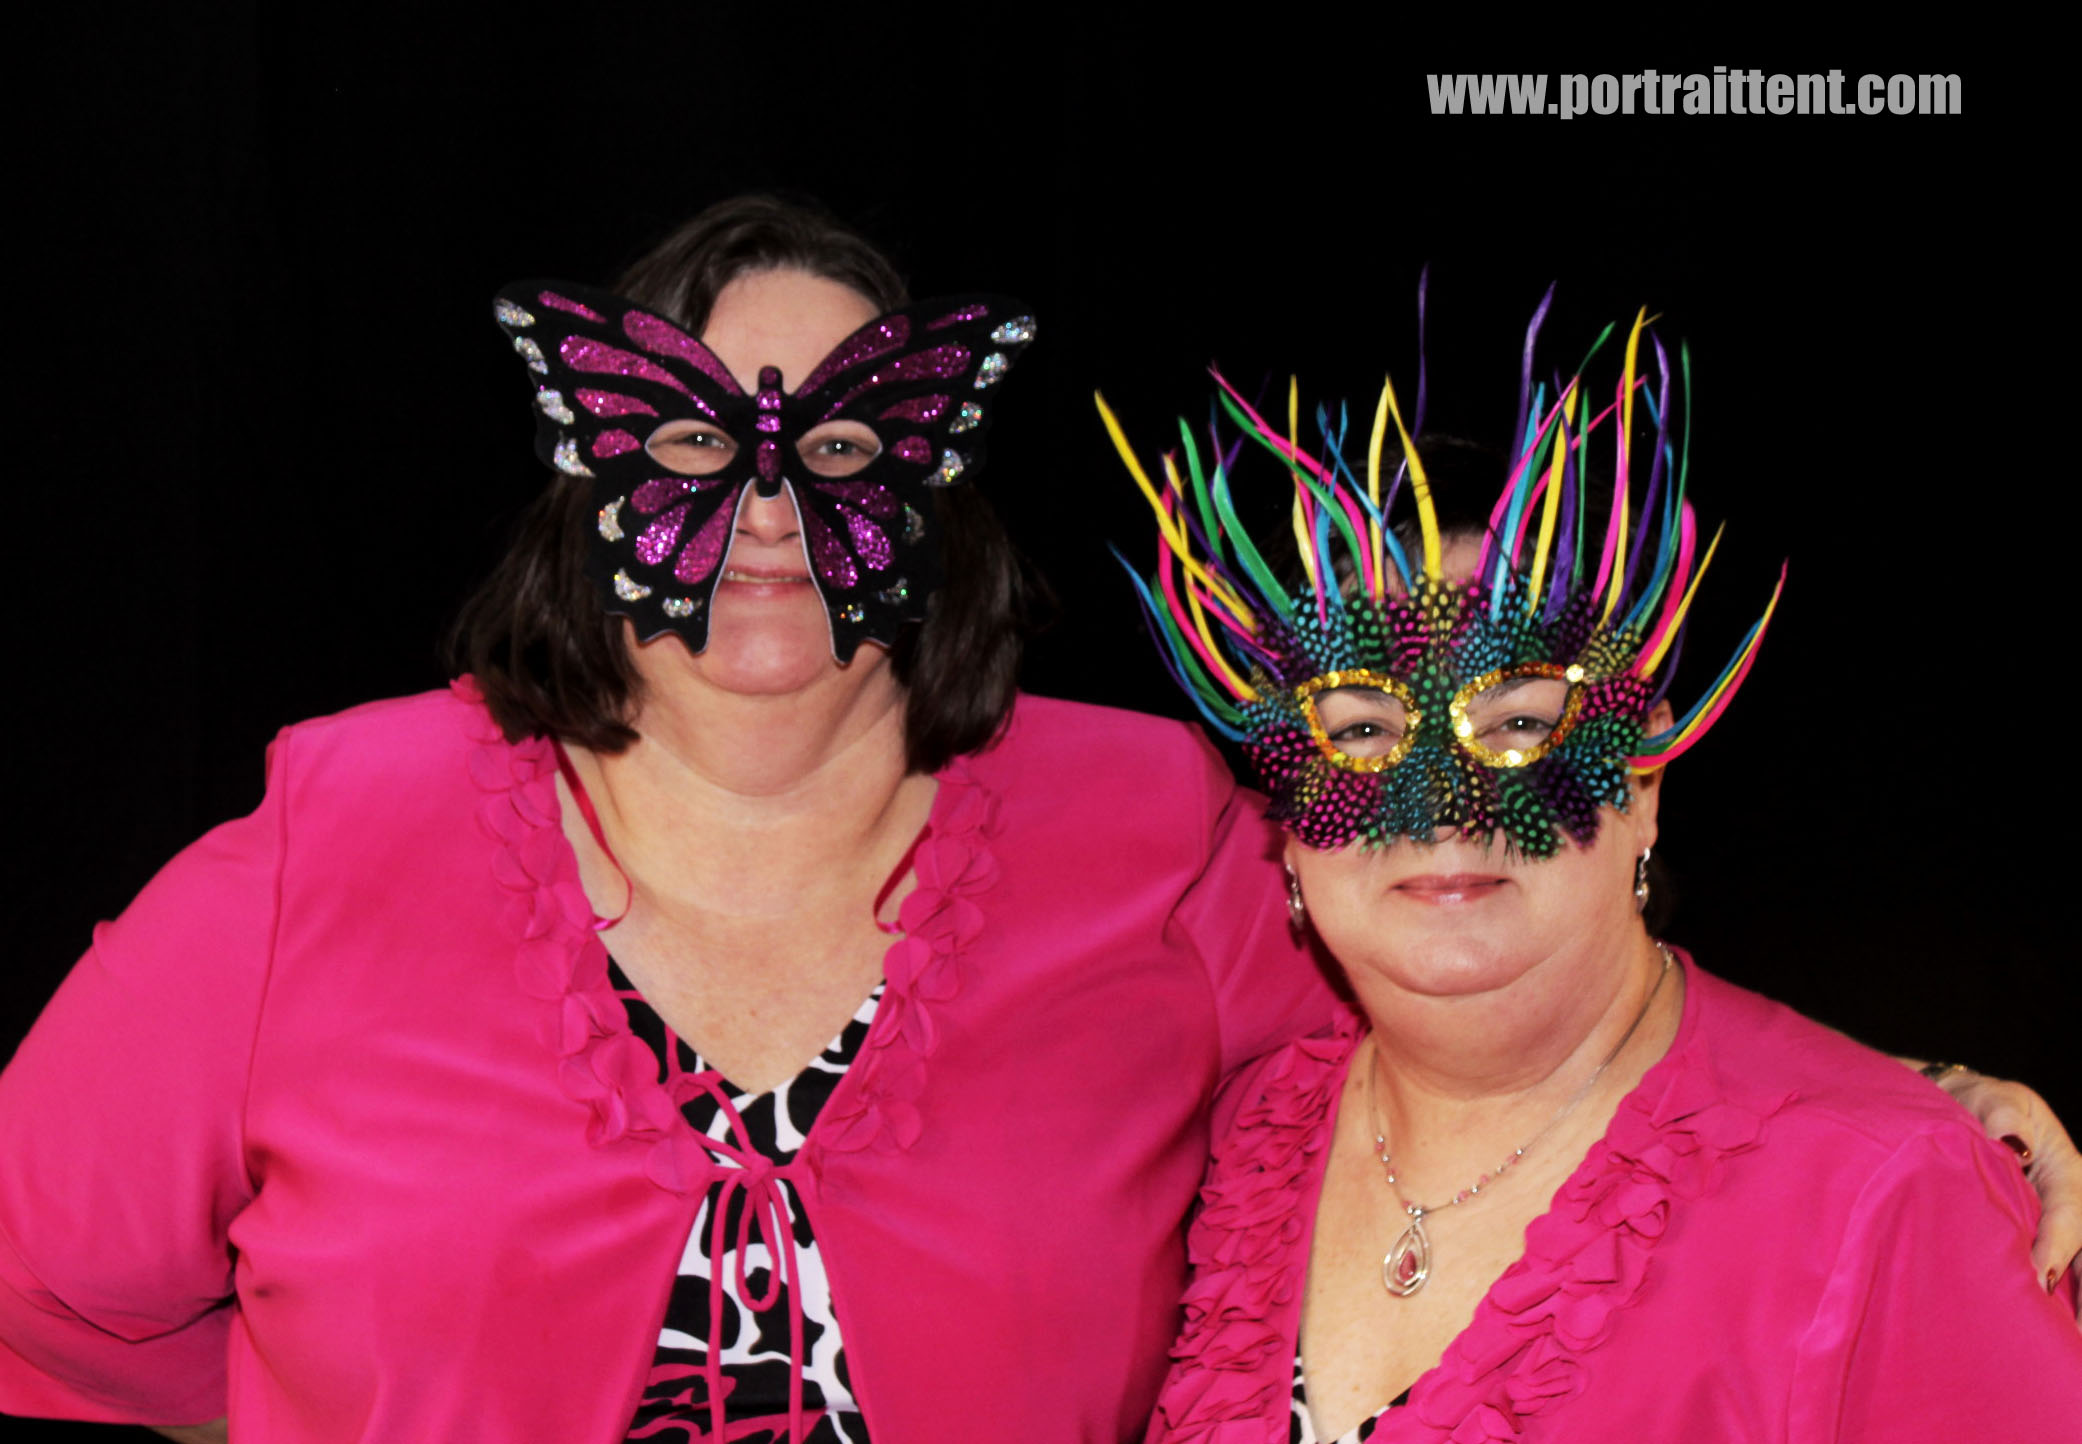 Photobooth_portraittent14_photography_daytona_beach_photo_booth_jacksonville_miami_orlando_florida.original.original